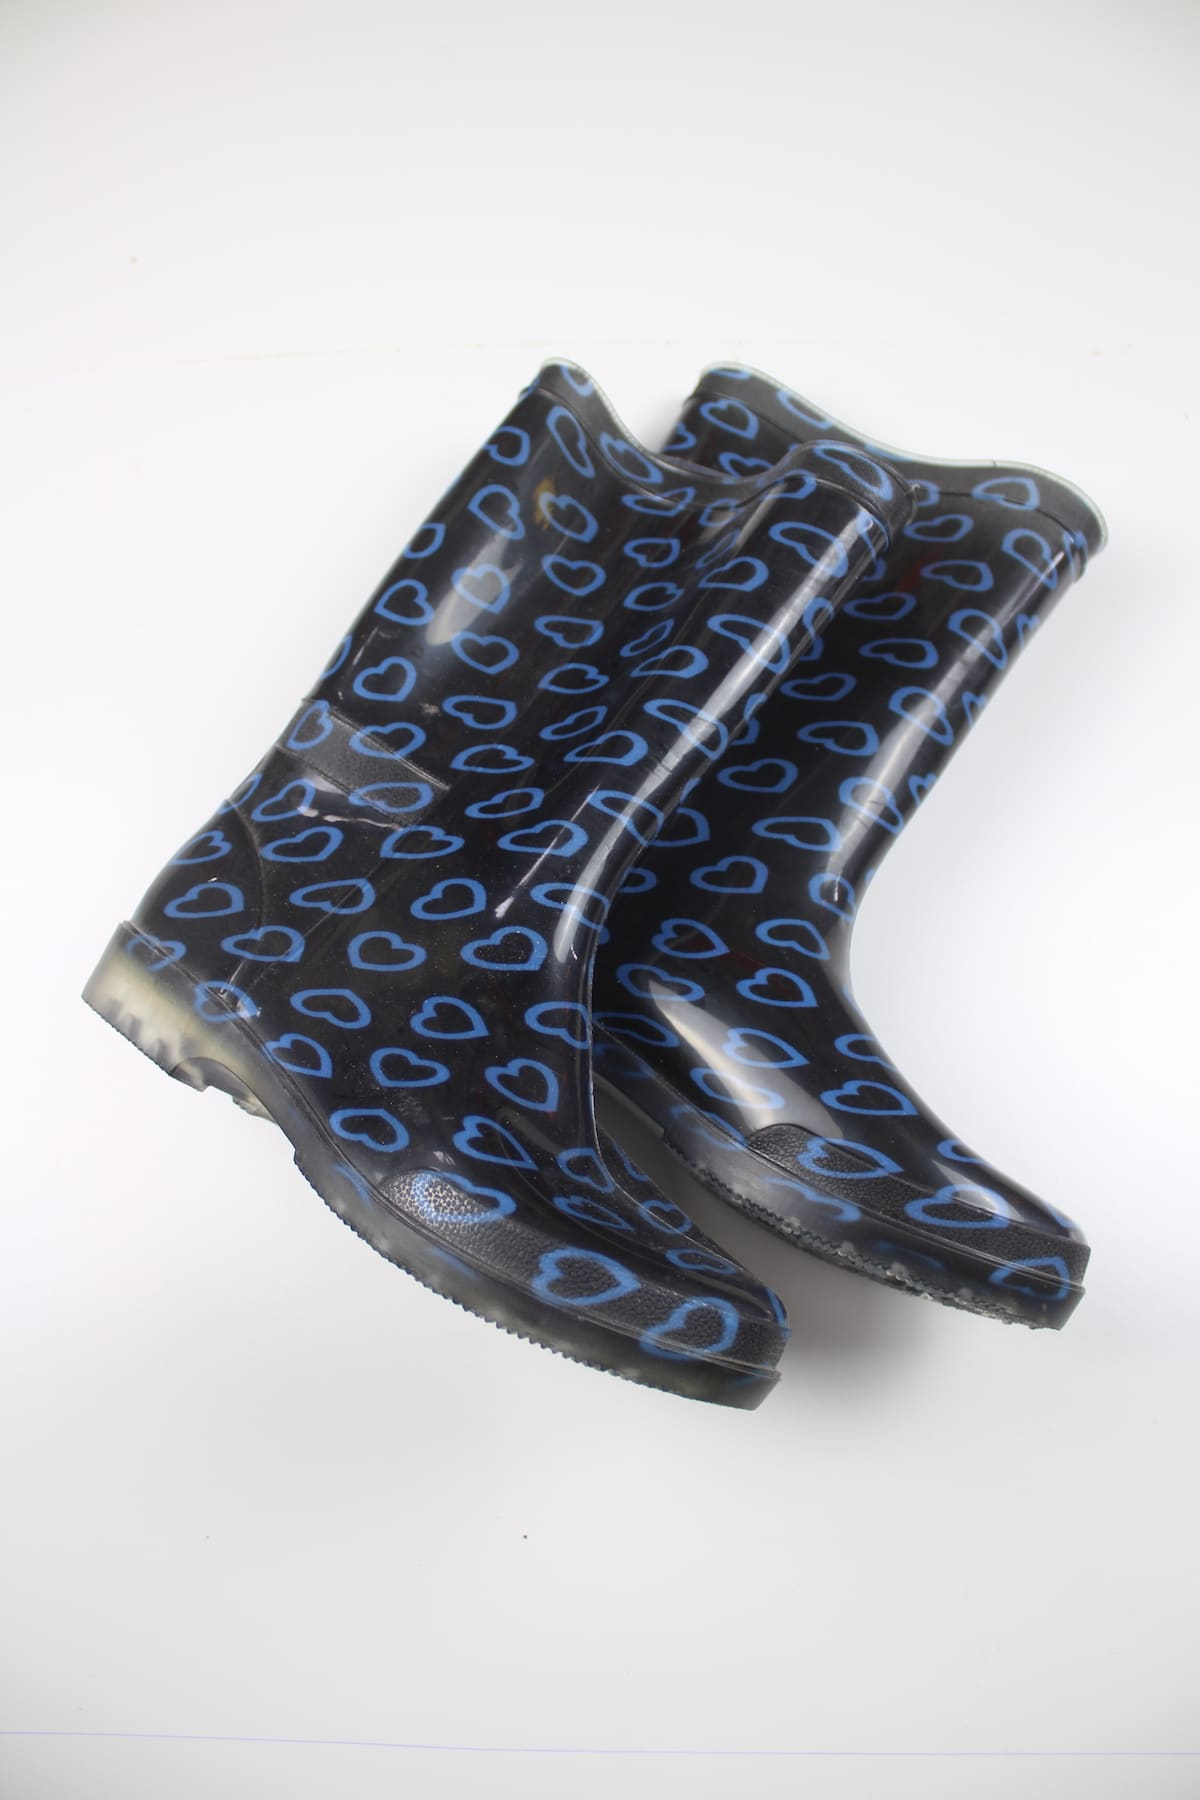 Second-hand Clothing - Women, Shoes, Boots, Second-Hand Clothing